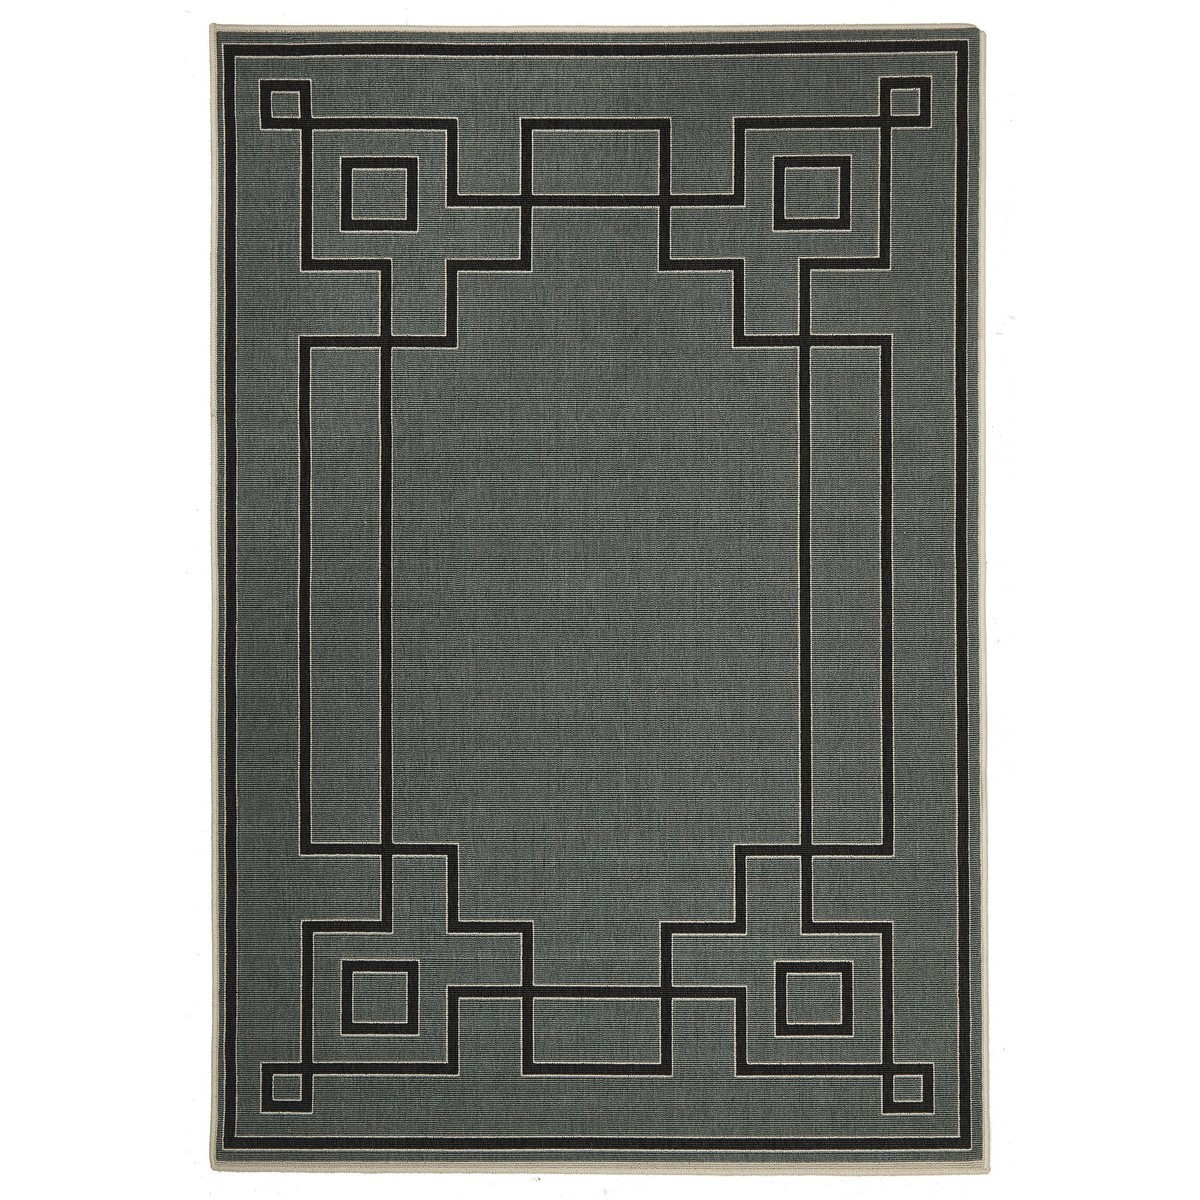 Alfresco Shanghai Egyptian Made Outdoor Rug, 160x110cm, Steel